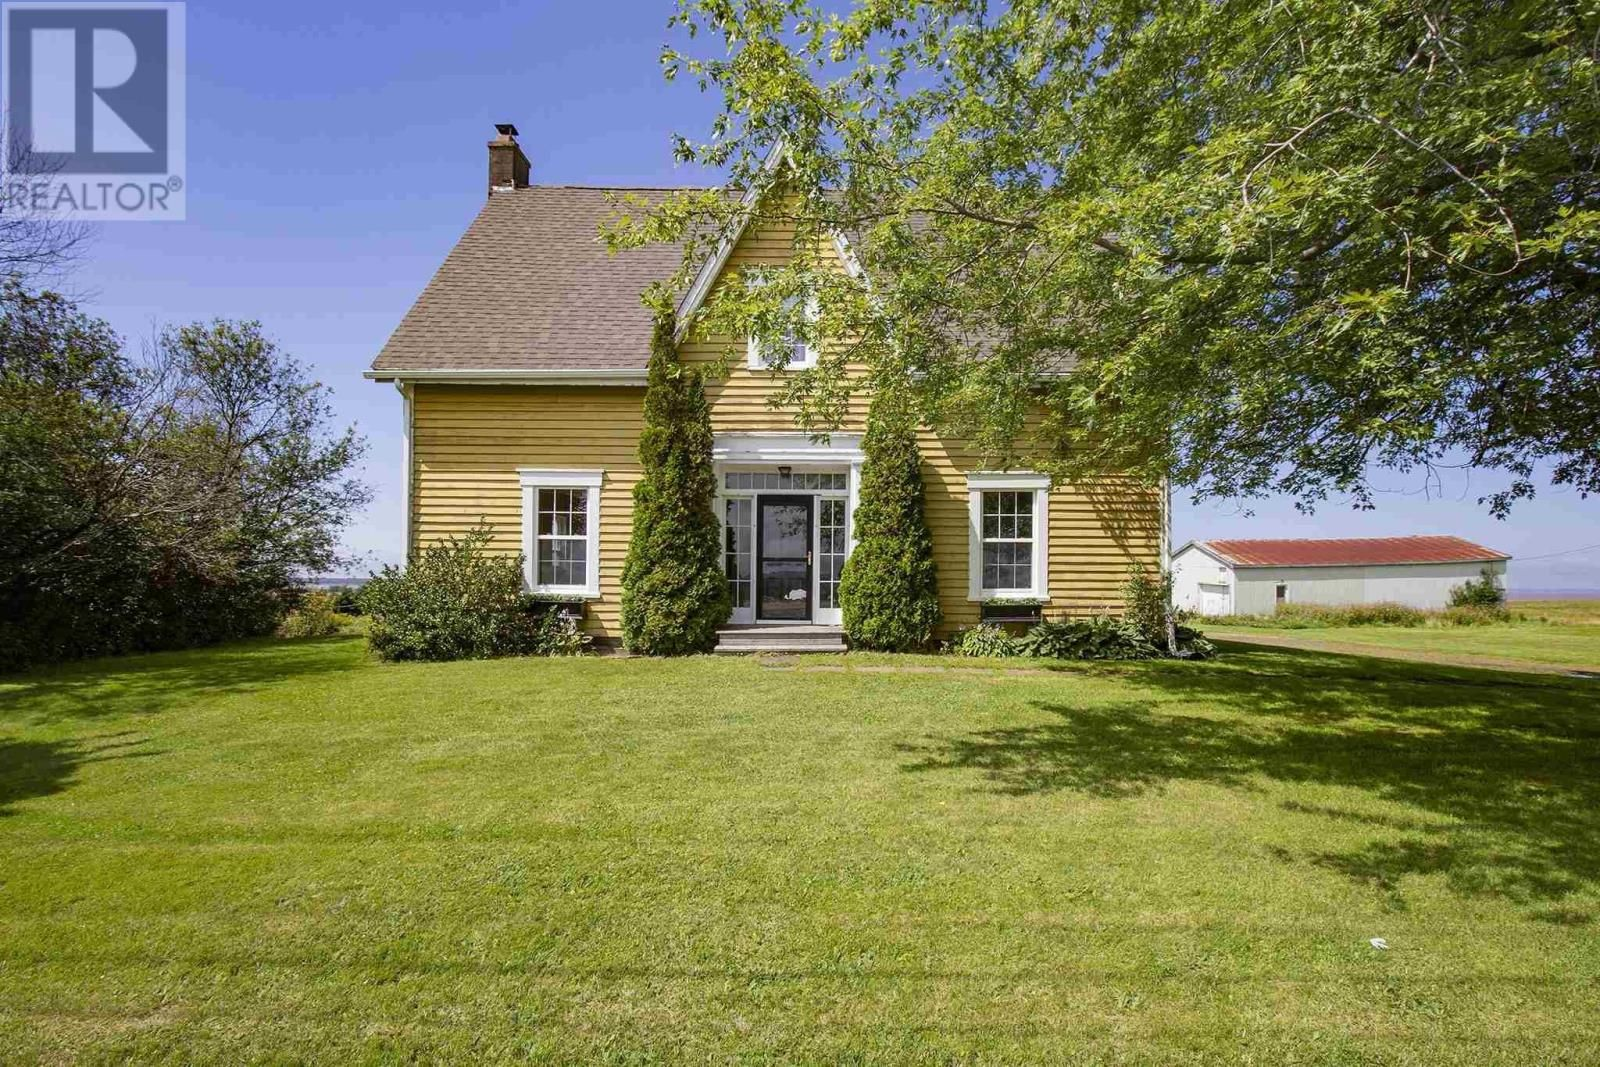 Main Photo: 669 Southampton Road in Amherst Point: House for sale : MLS®# 202121754